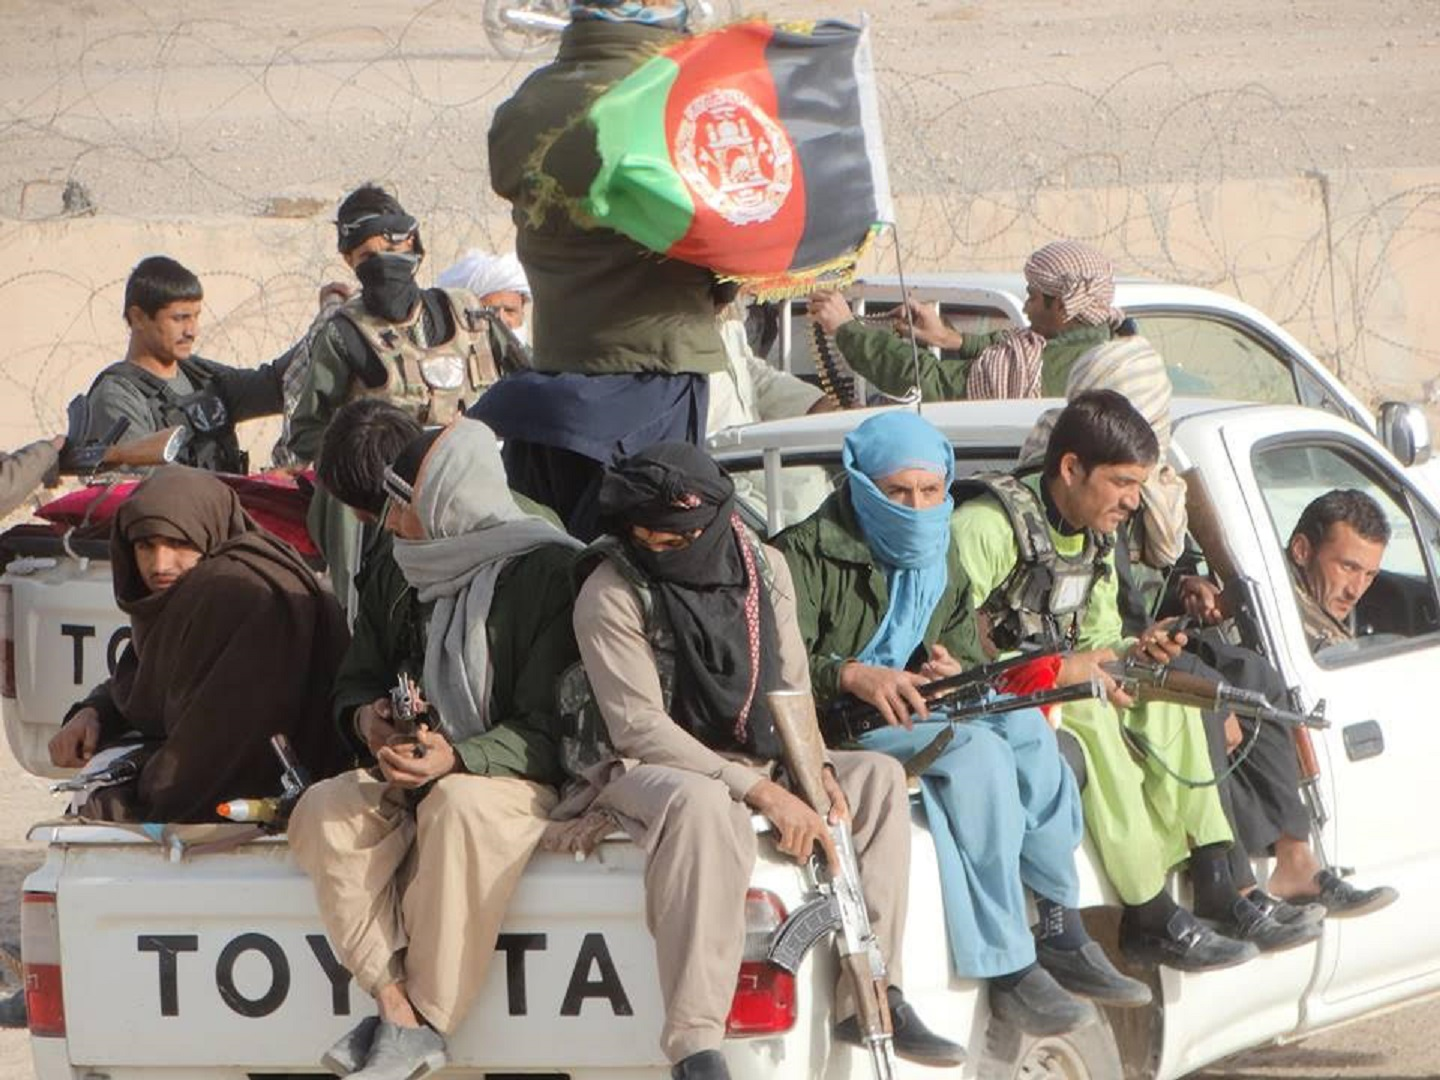 Helmand residents rise up against Taliban